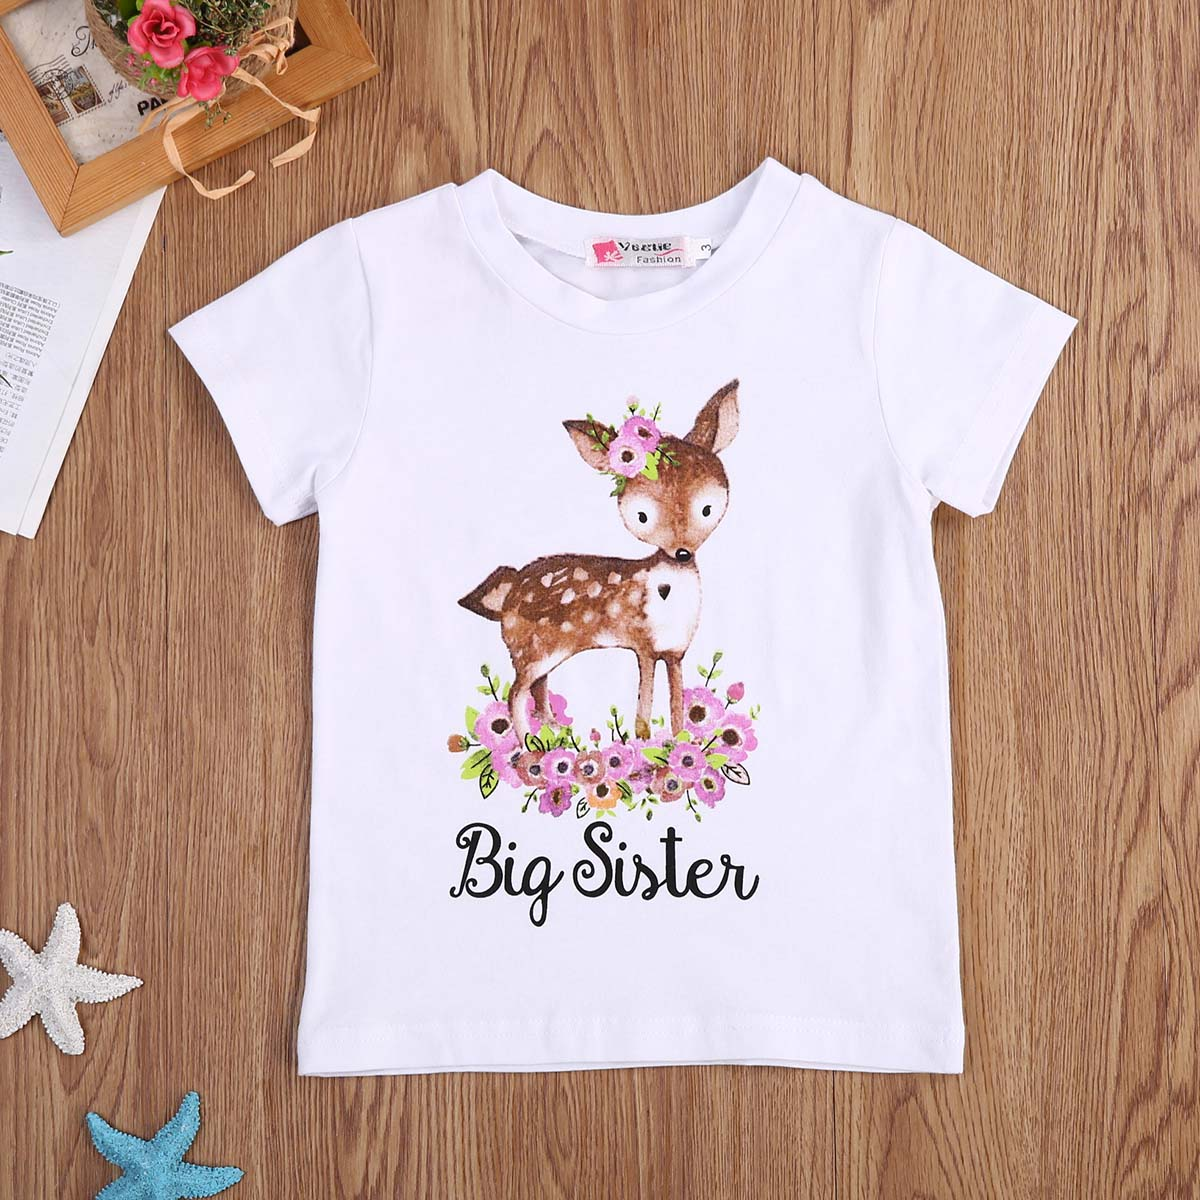 Pants Outfit Clothes USA Sister Match Big Little Sister Girl T-shirt Romper Top